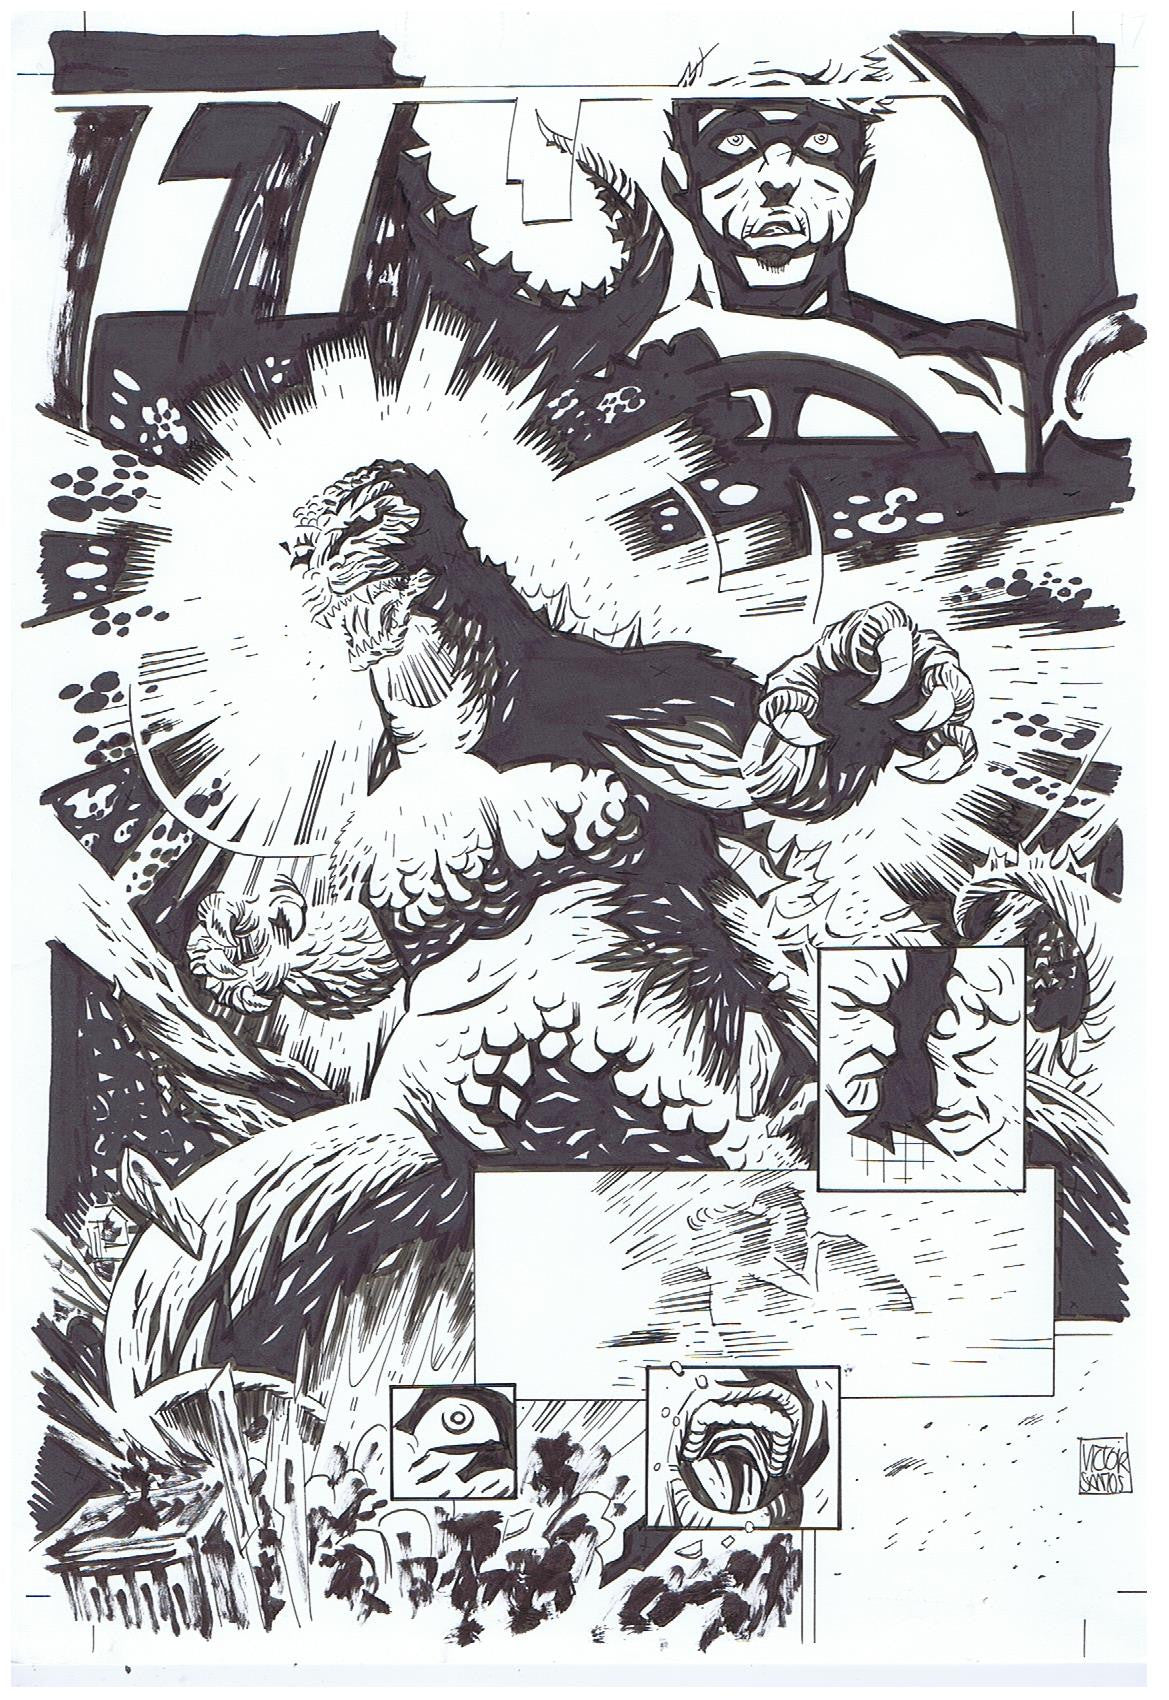 Godzilla Interior Splash Page + Layout